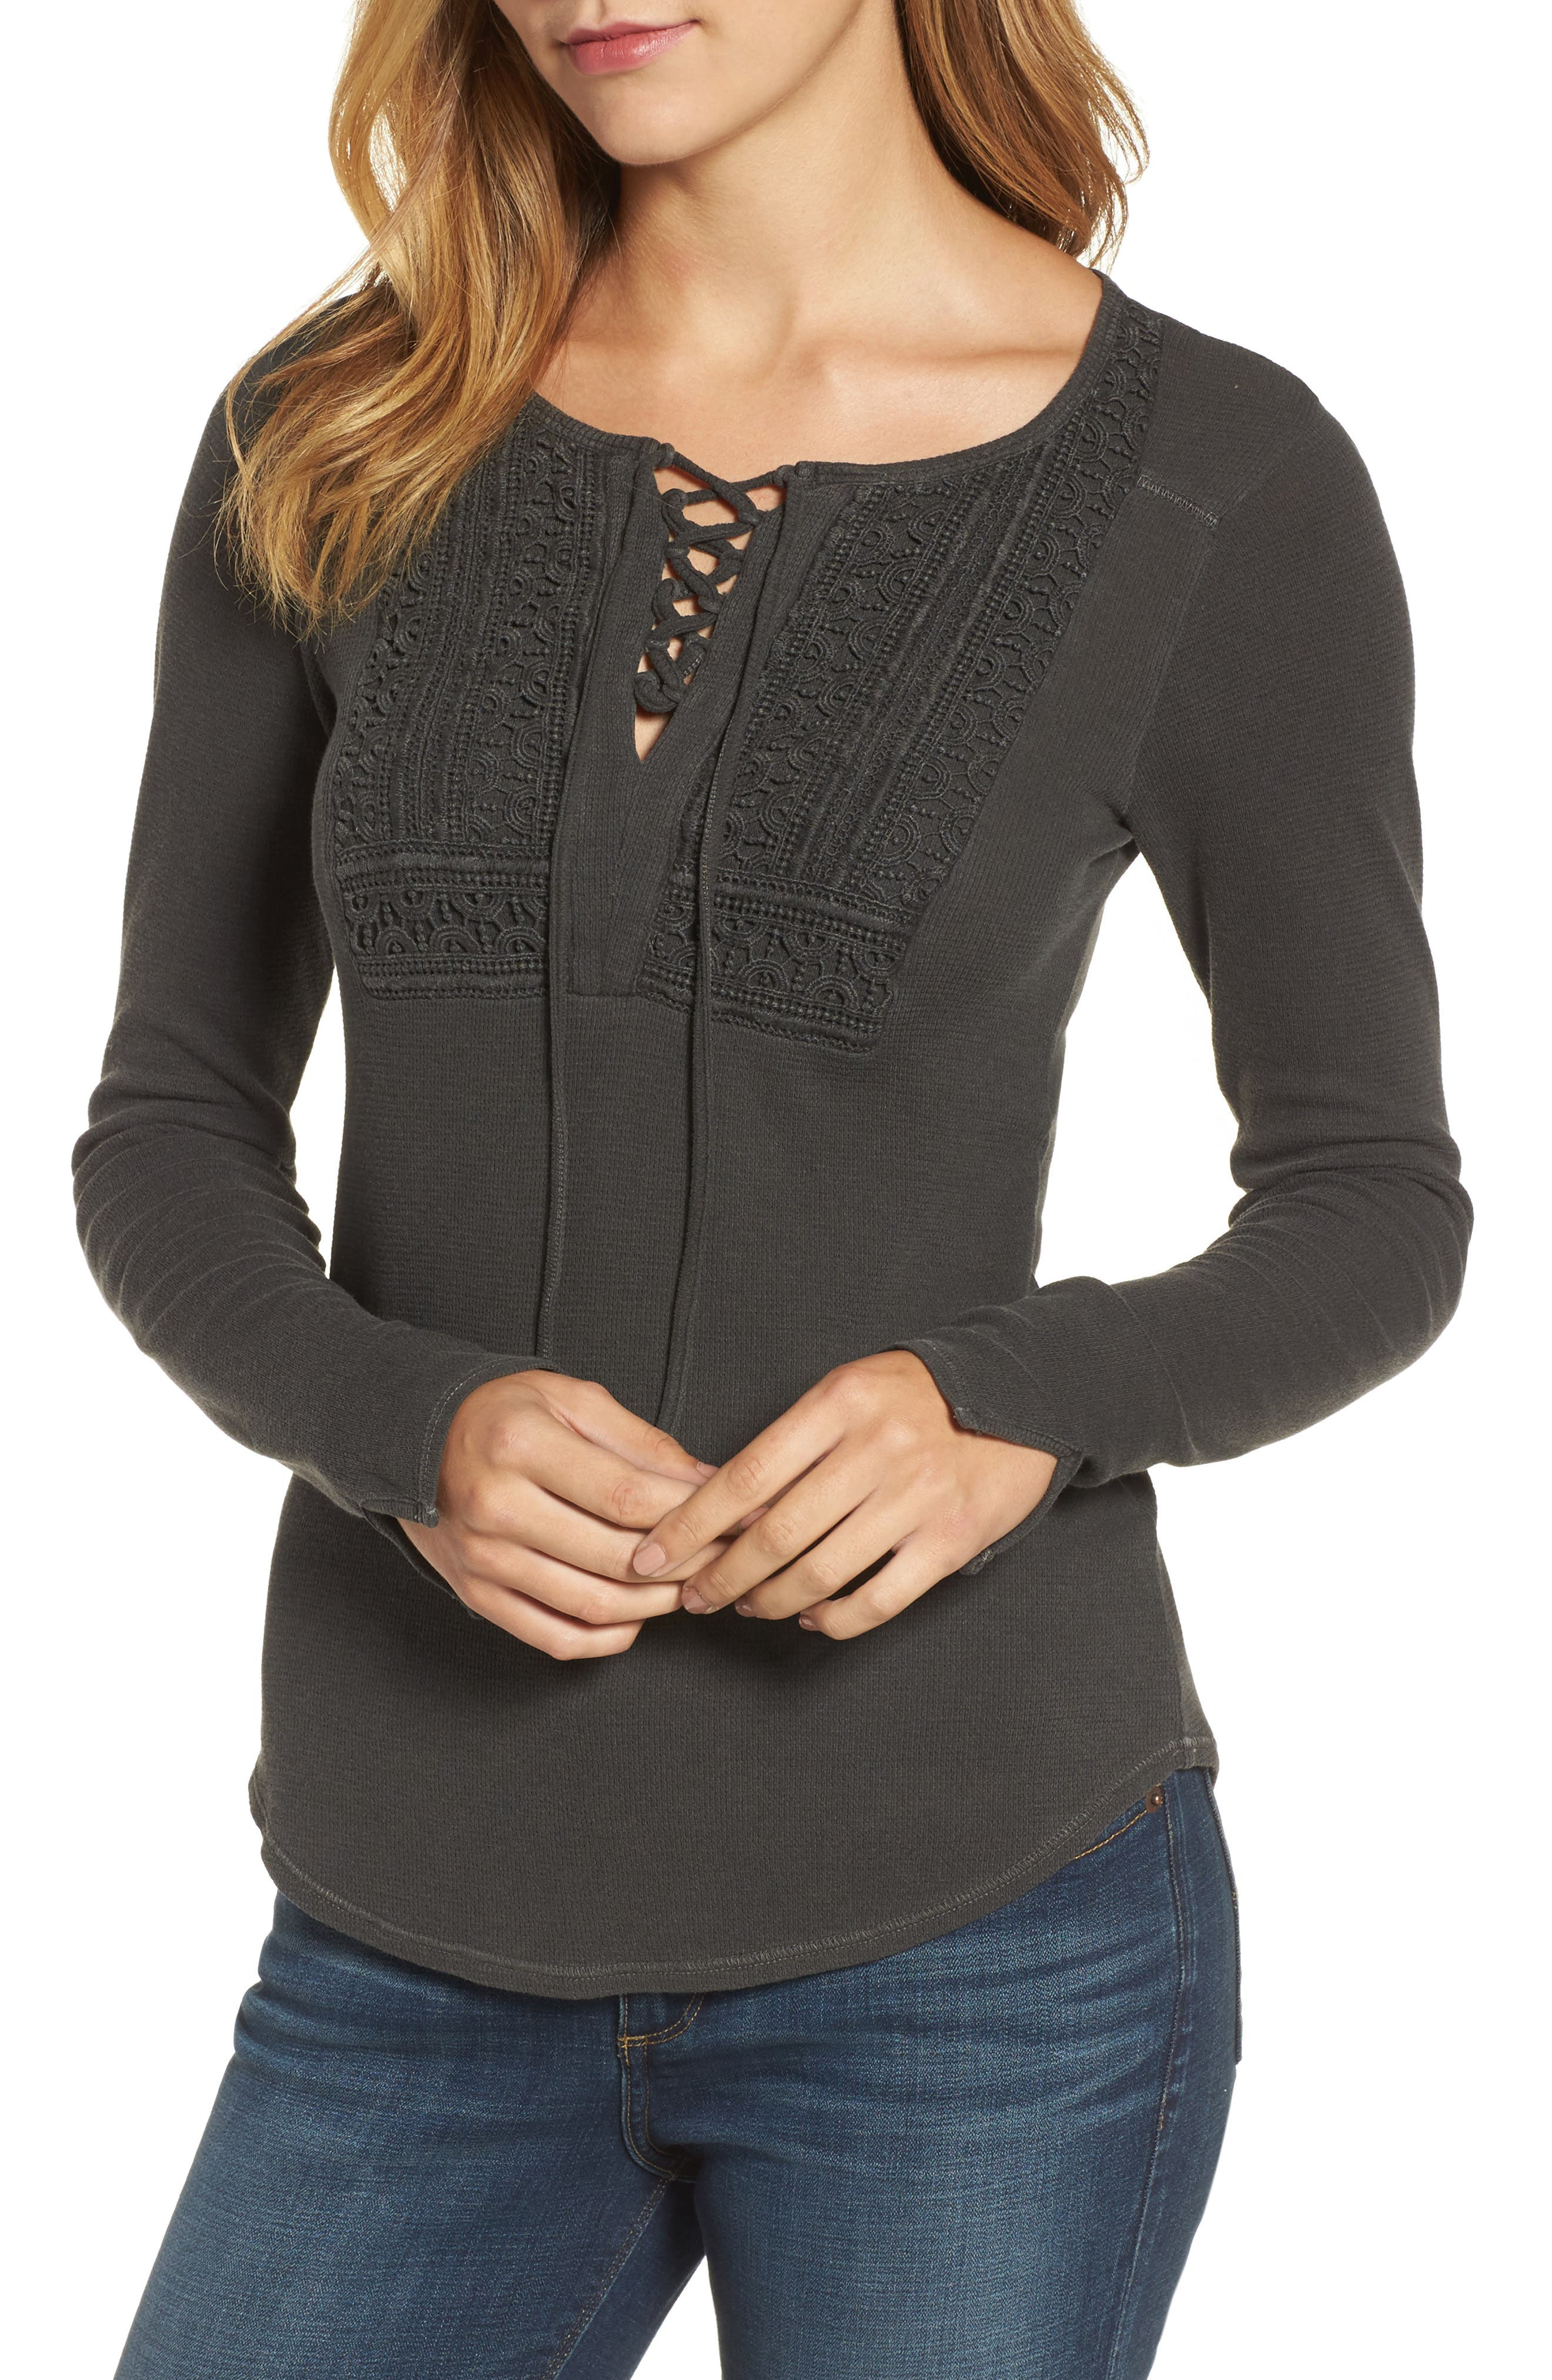 Main Image - Lucky Brand Lace-Up Bib Thermal Top